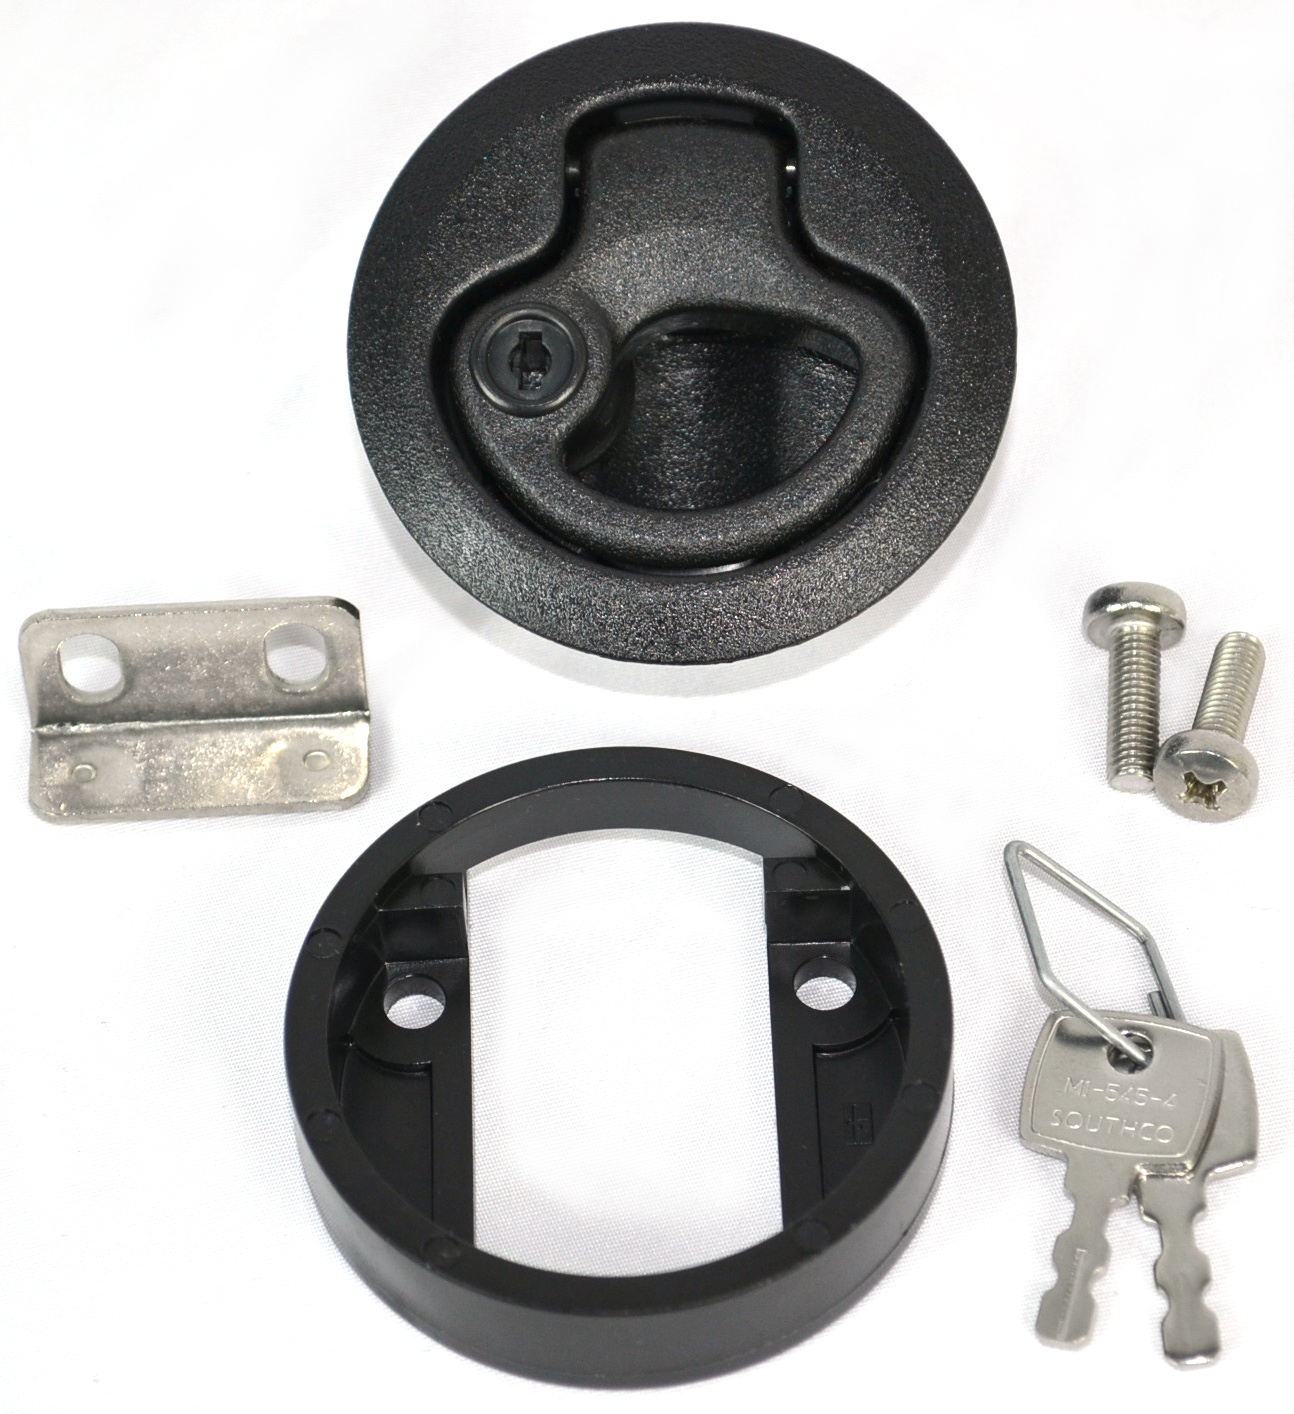 Locking Southco Inc M1-41 Flush Pull Latch .075 to .275 Panel Thickness